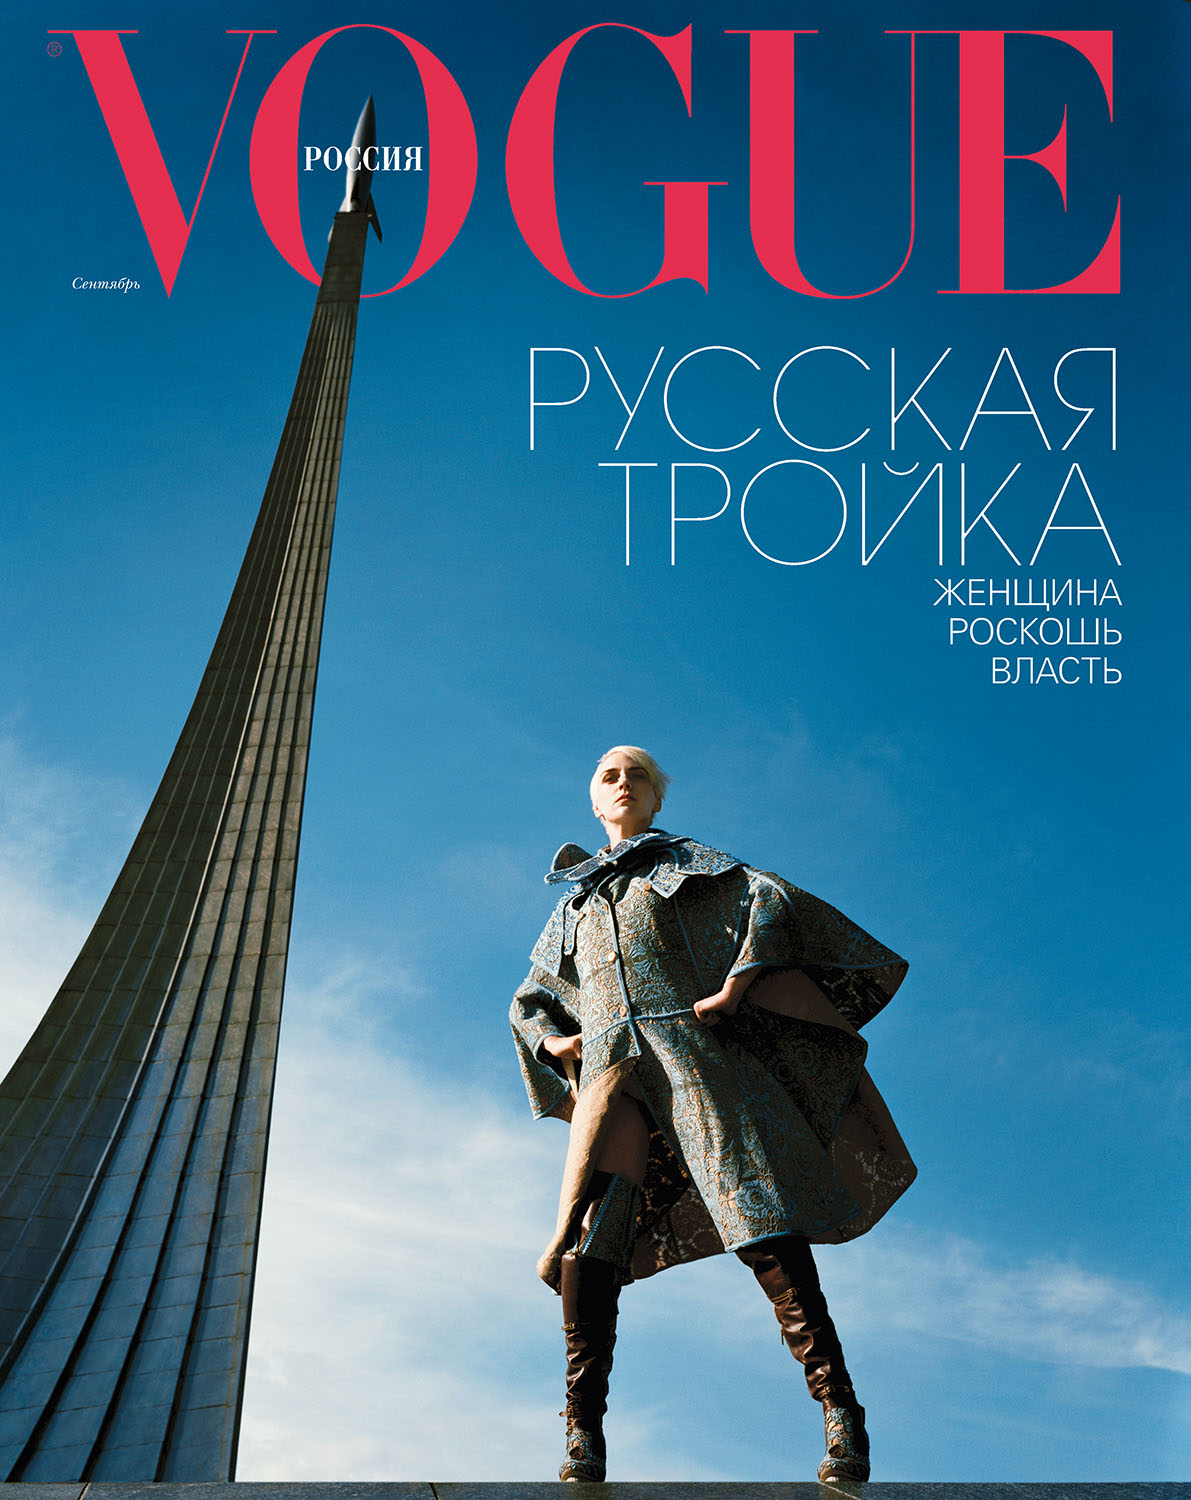 Vogue Russia - Monuments